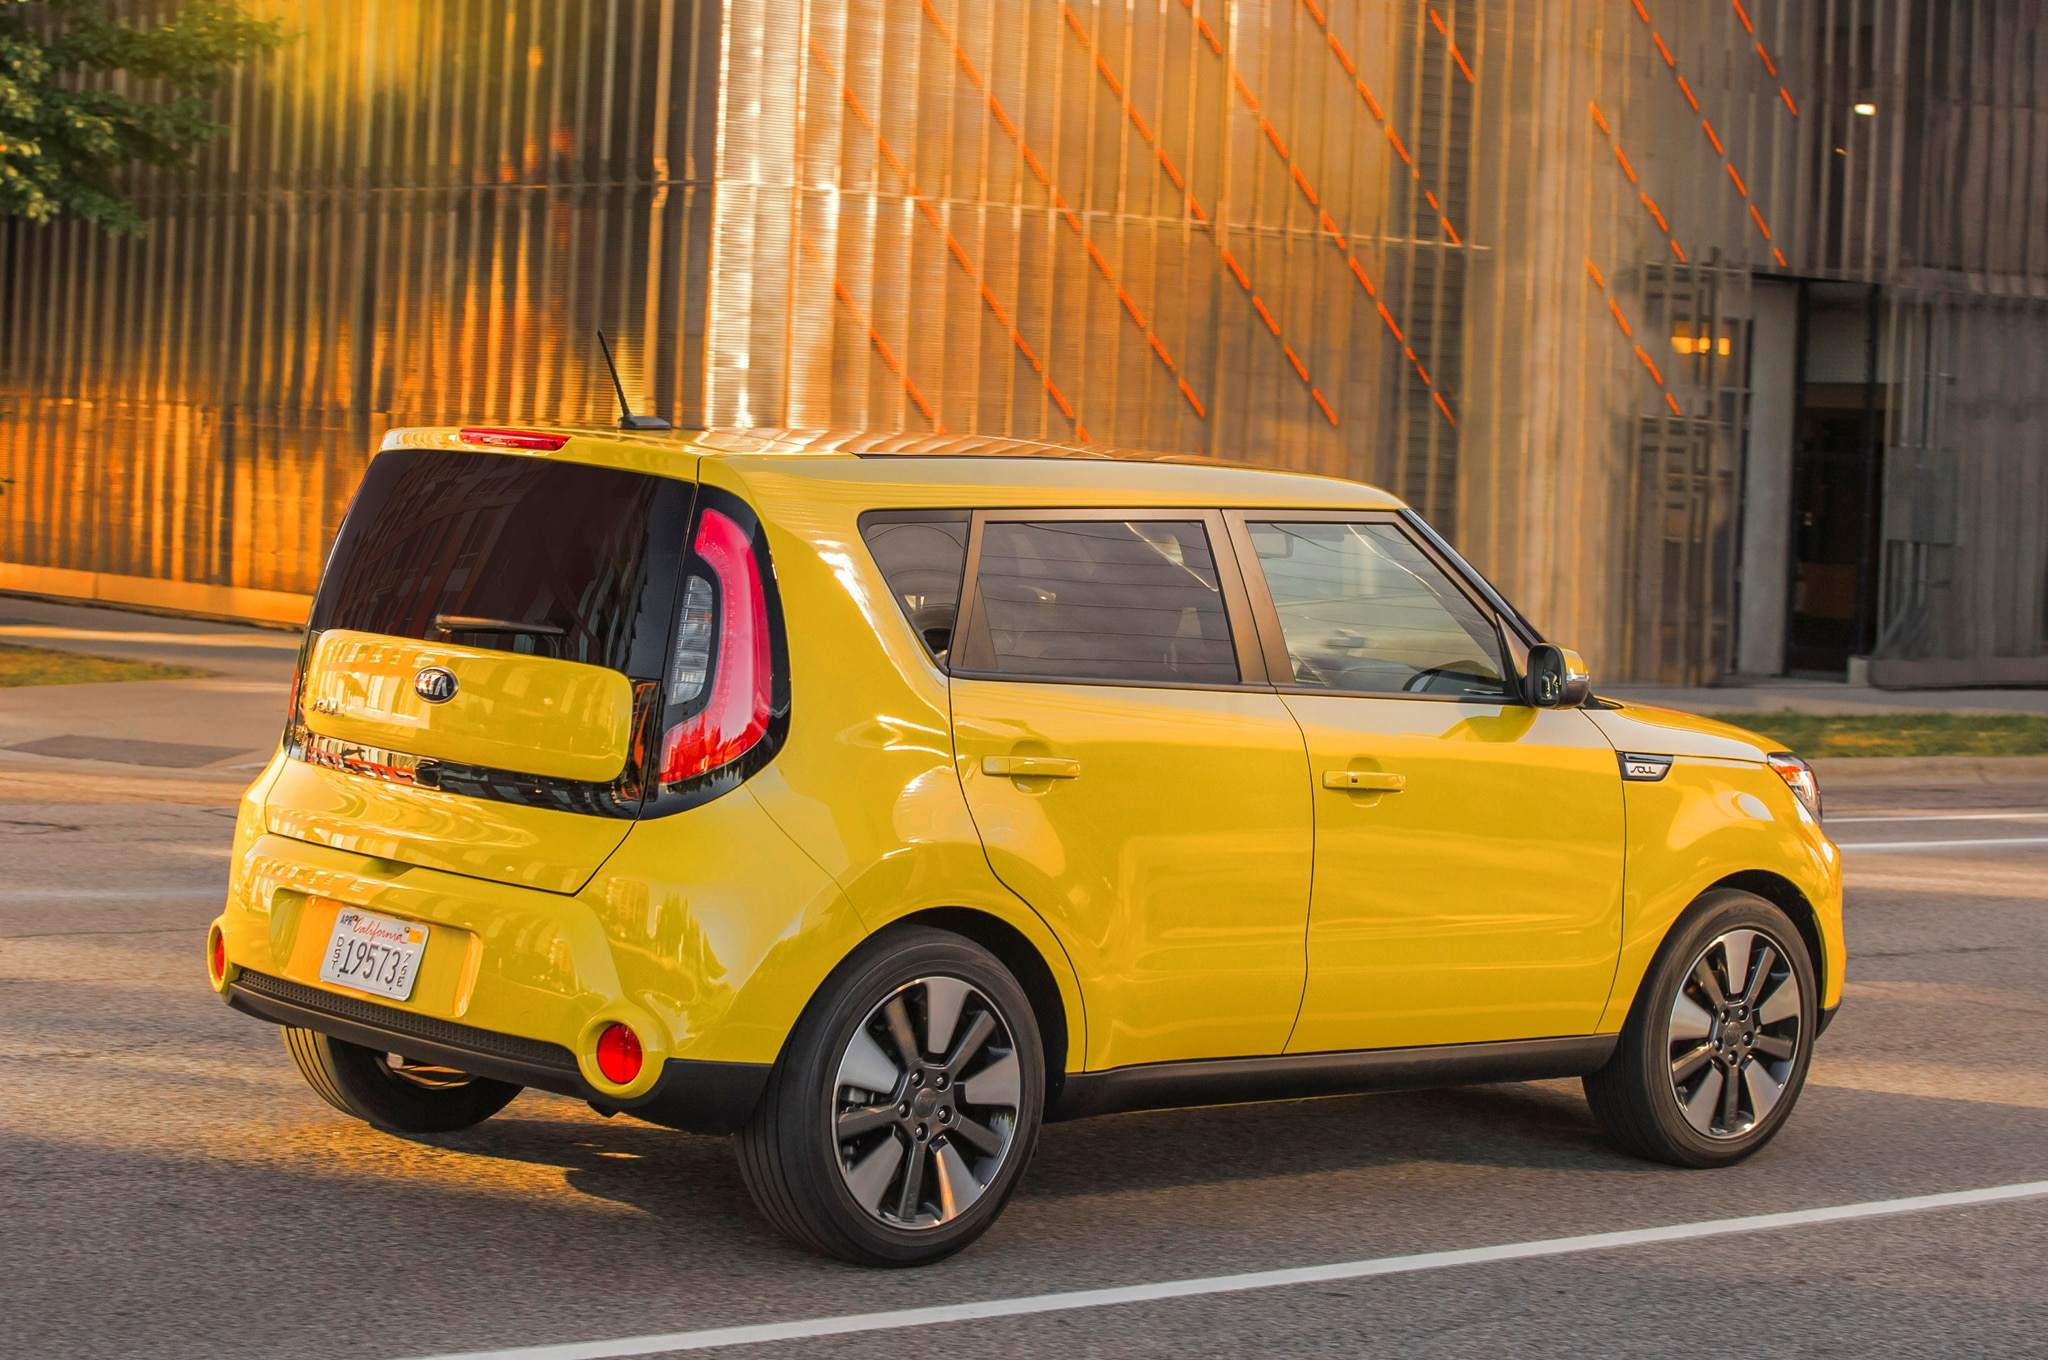 awd kia soul concept teased before chicago auto show debut. Black Bedroom Furniture Sets. Home Design Ideas